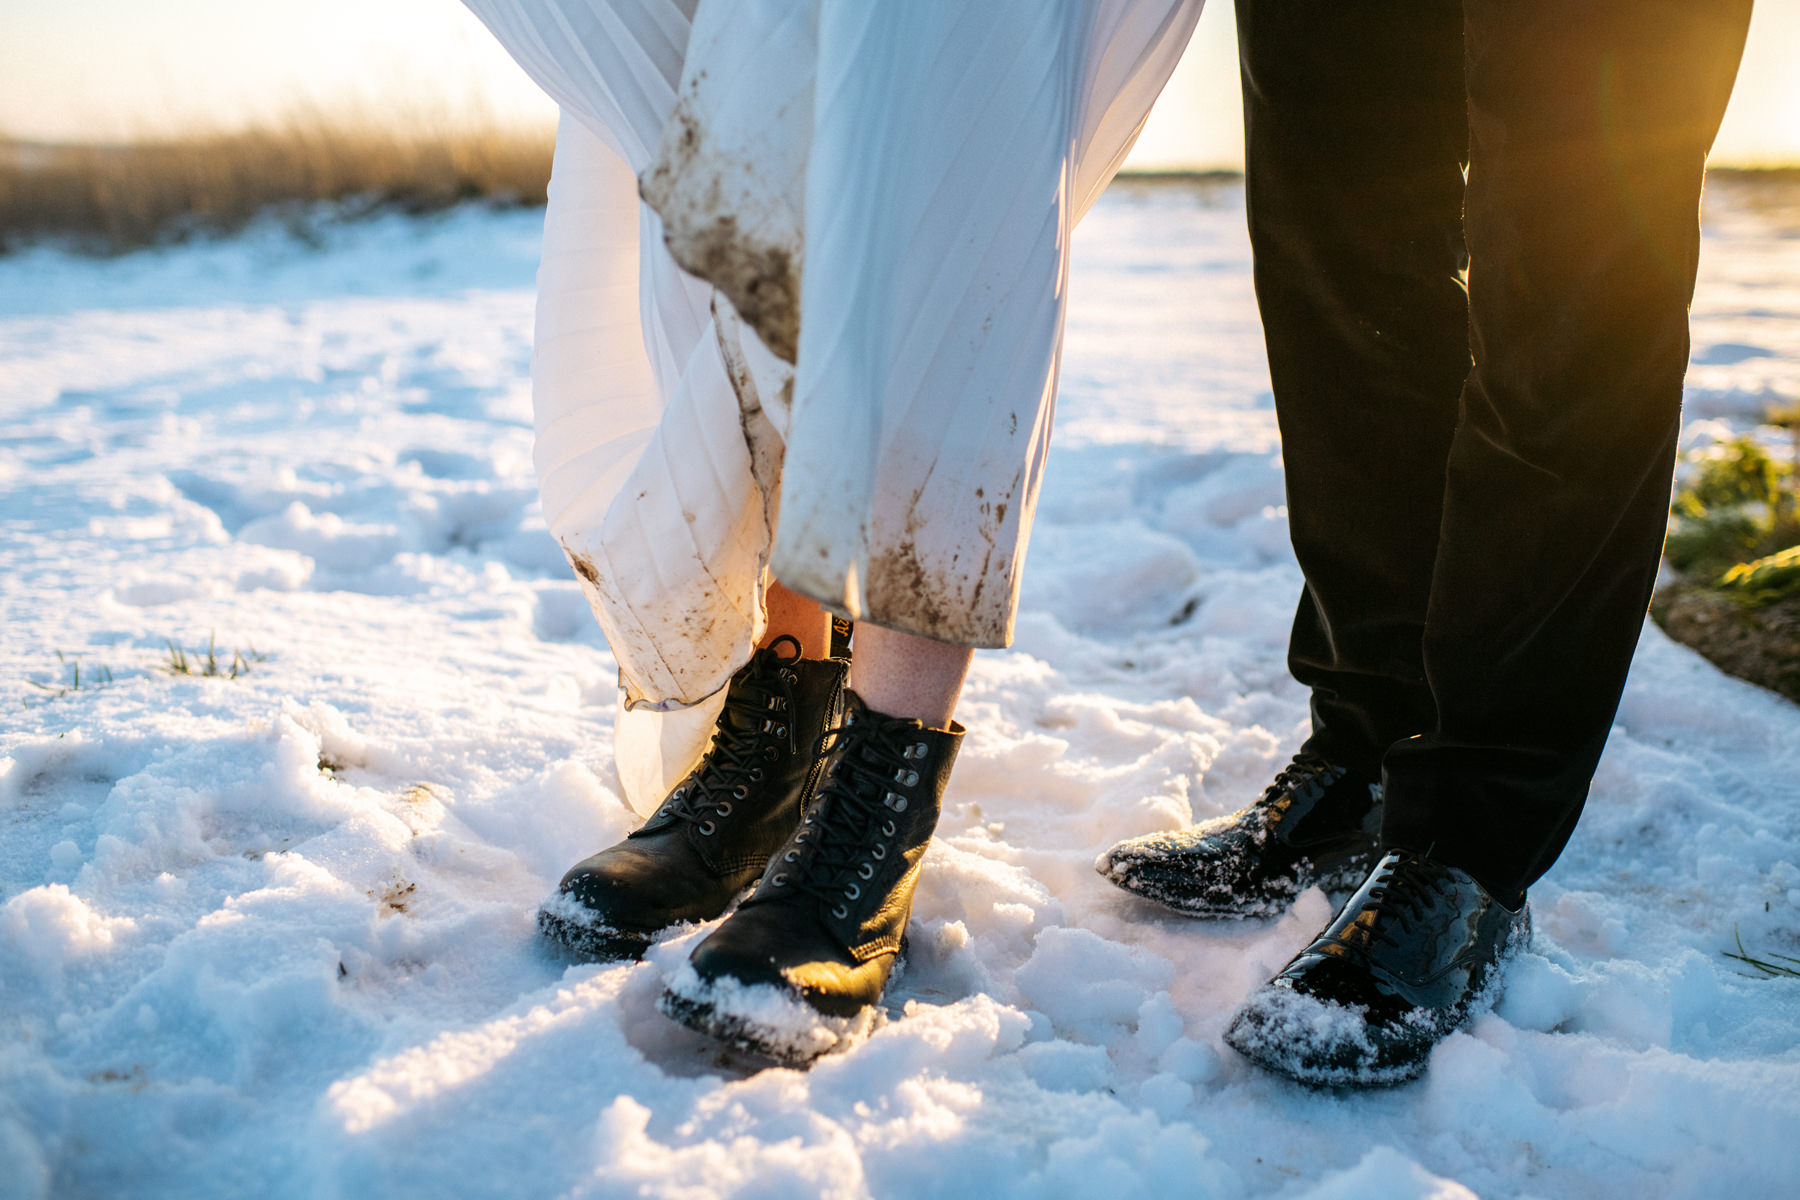 dirty wedding dress in snow